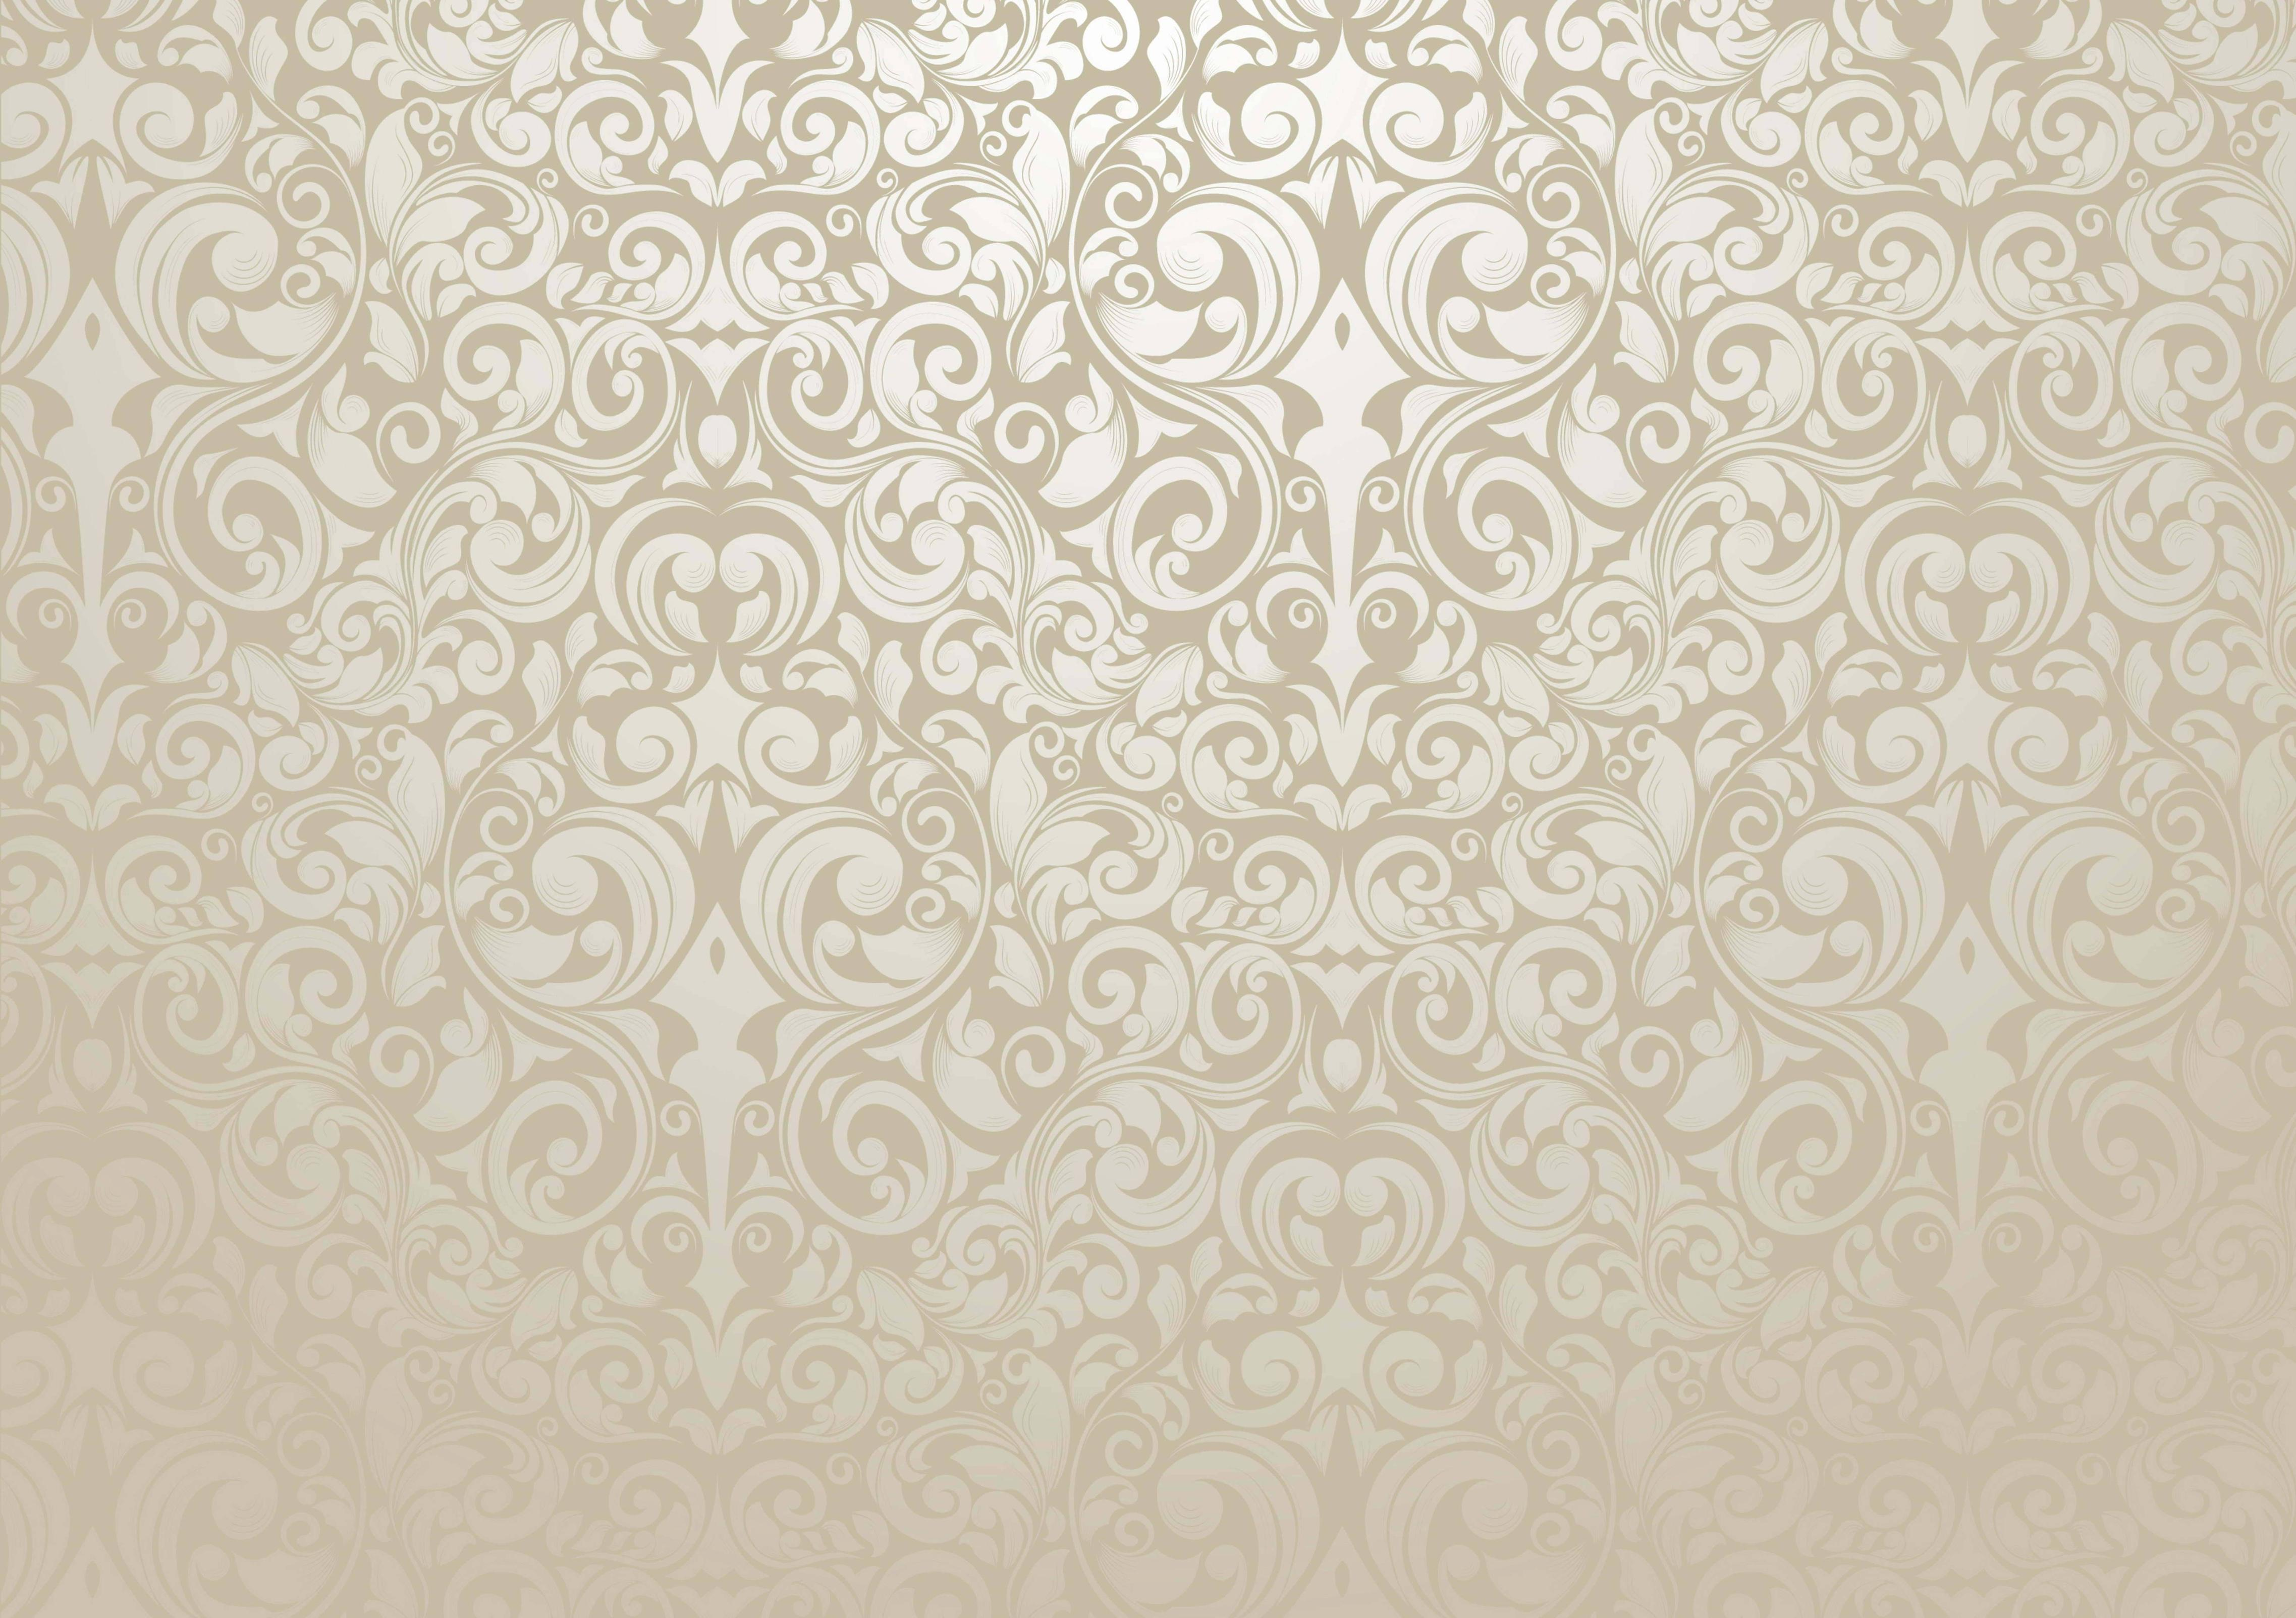 textured backgrounds - photo #42